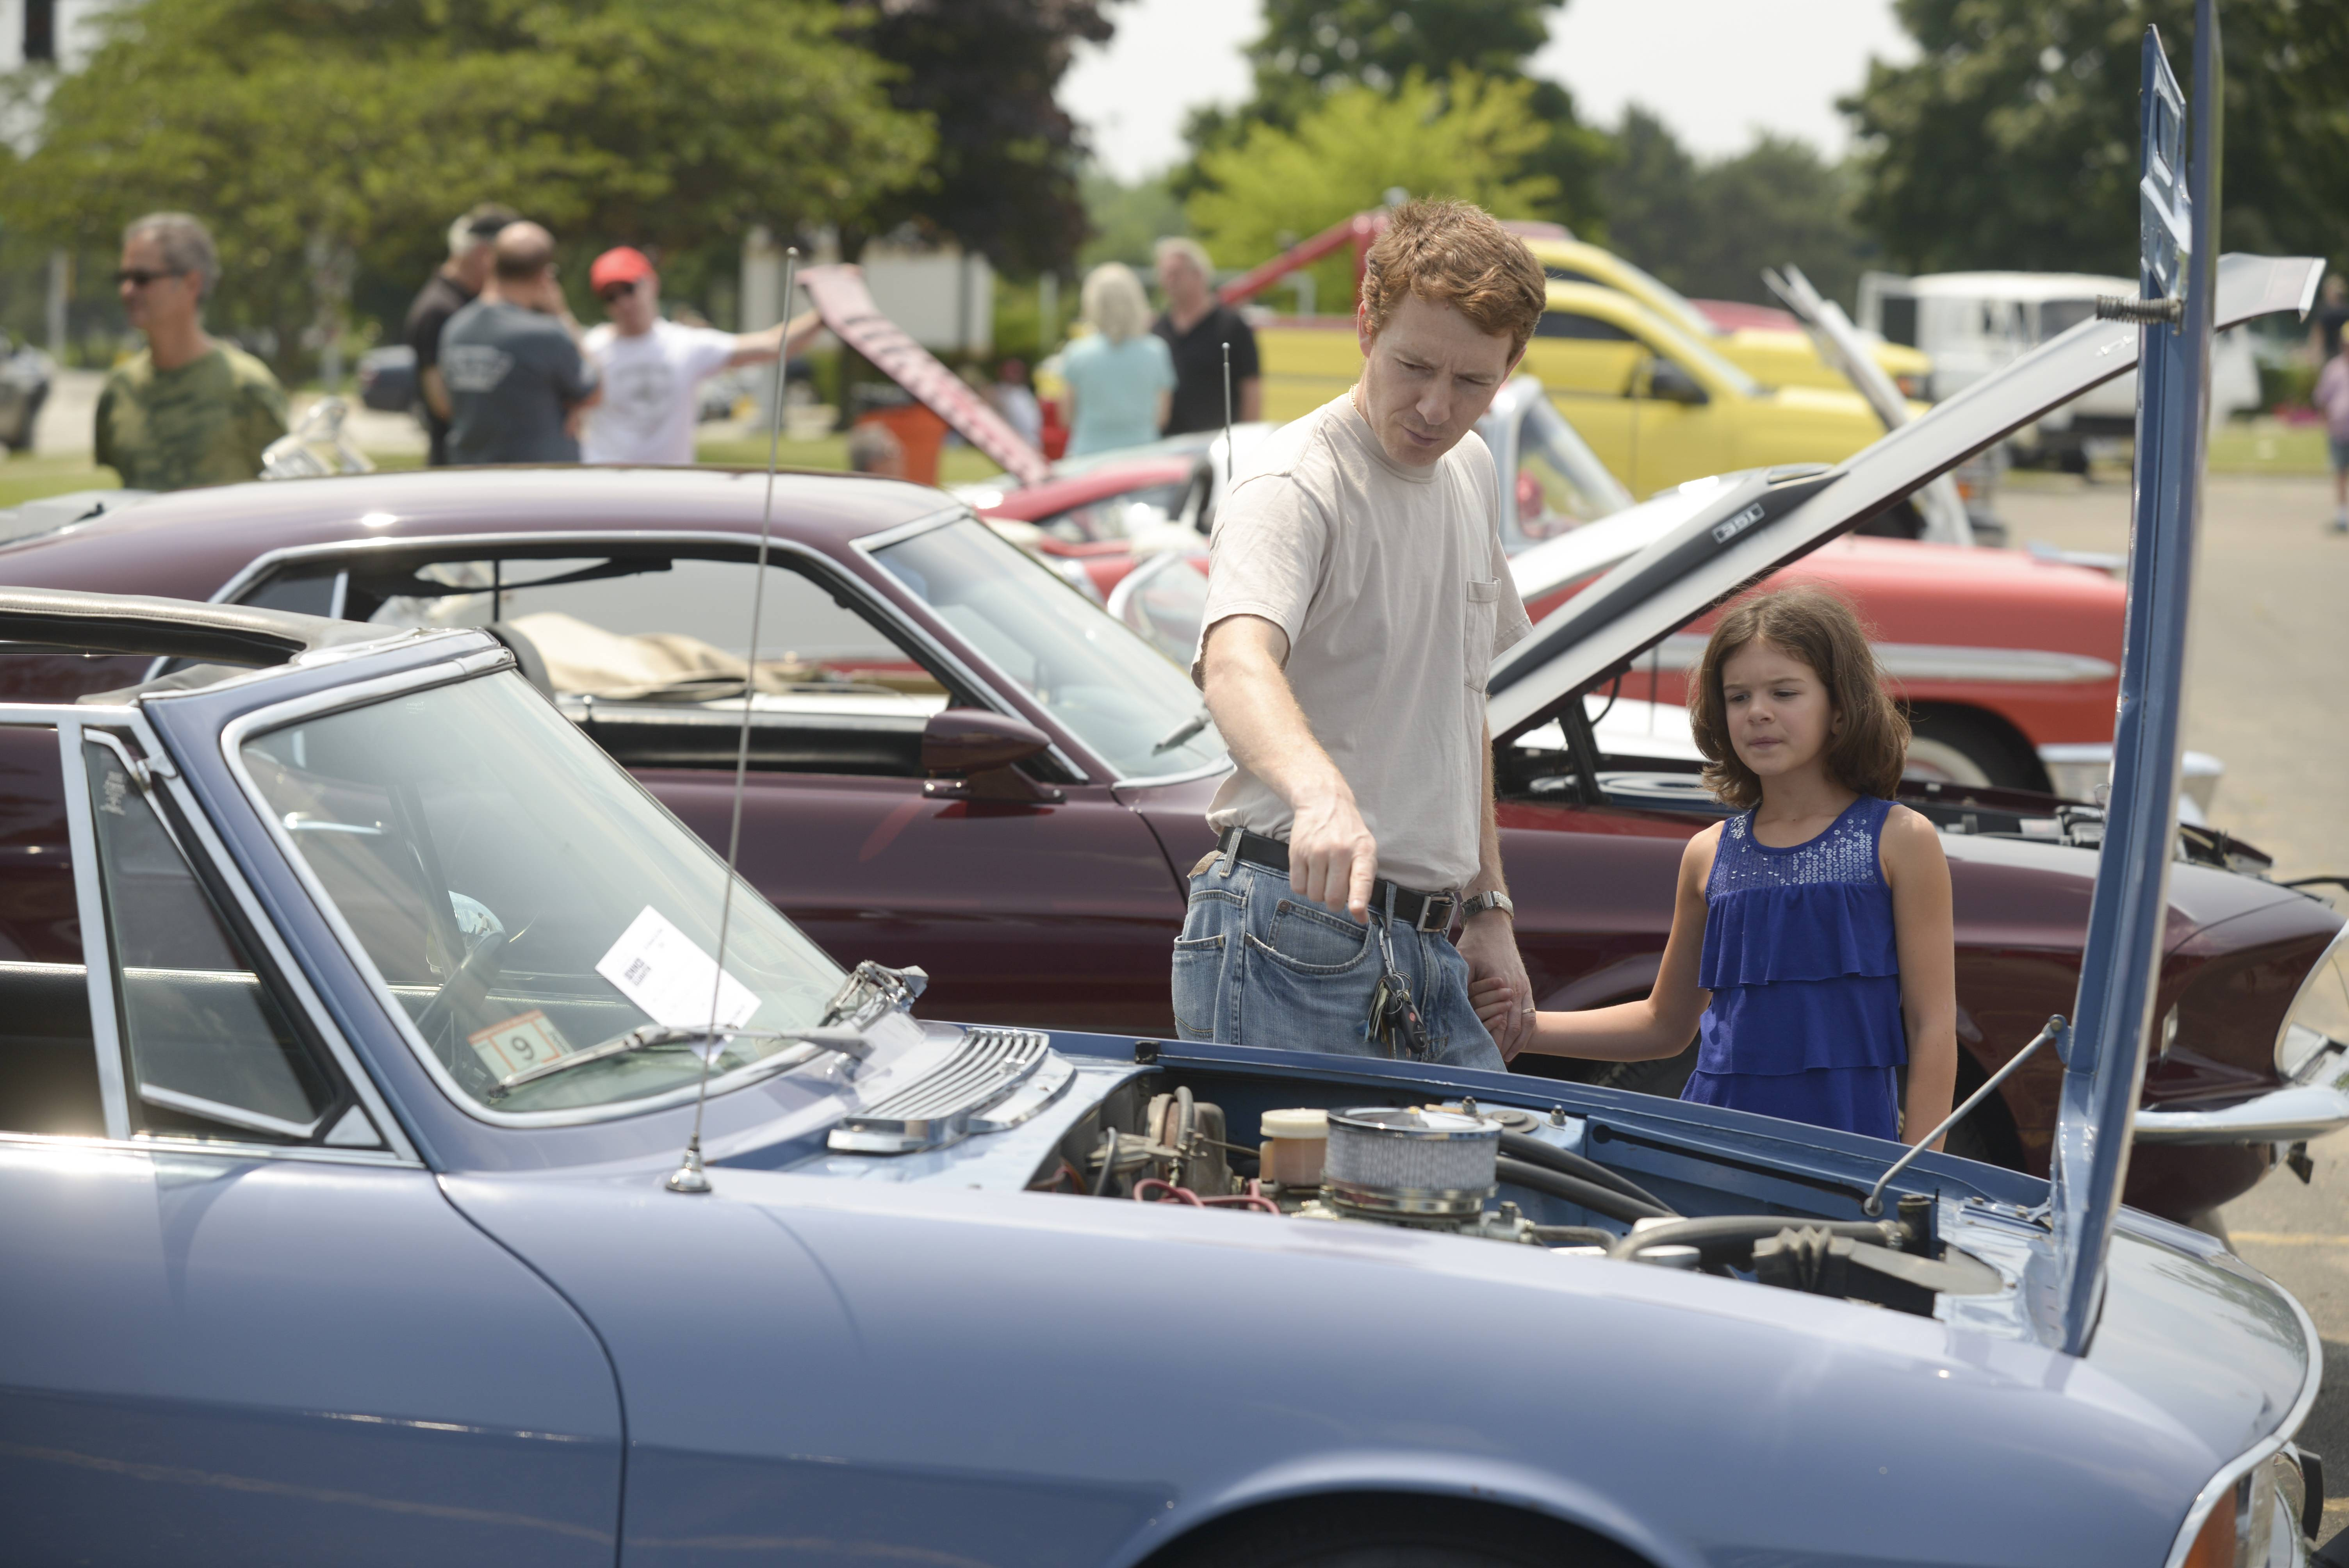 Igor Burda and his daughter Victoria, 8, of Vernon Hills check out the engine of the a 1973 Triumph Stag at the car show Saturday during the Vernon Hills Summer Celebration.